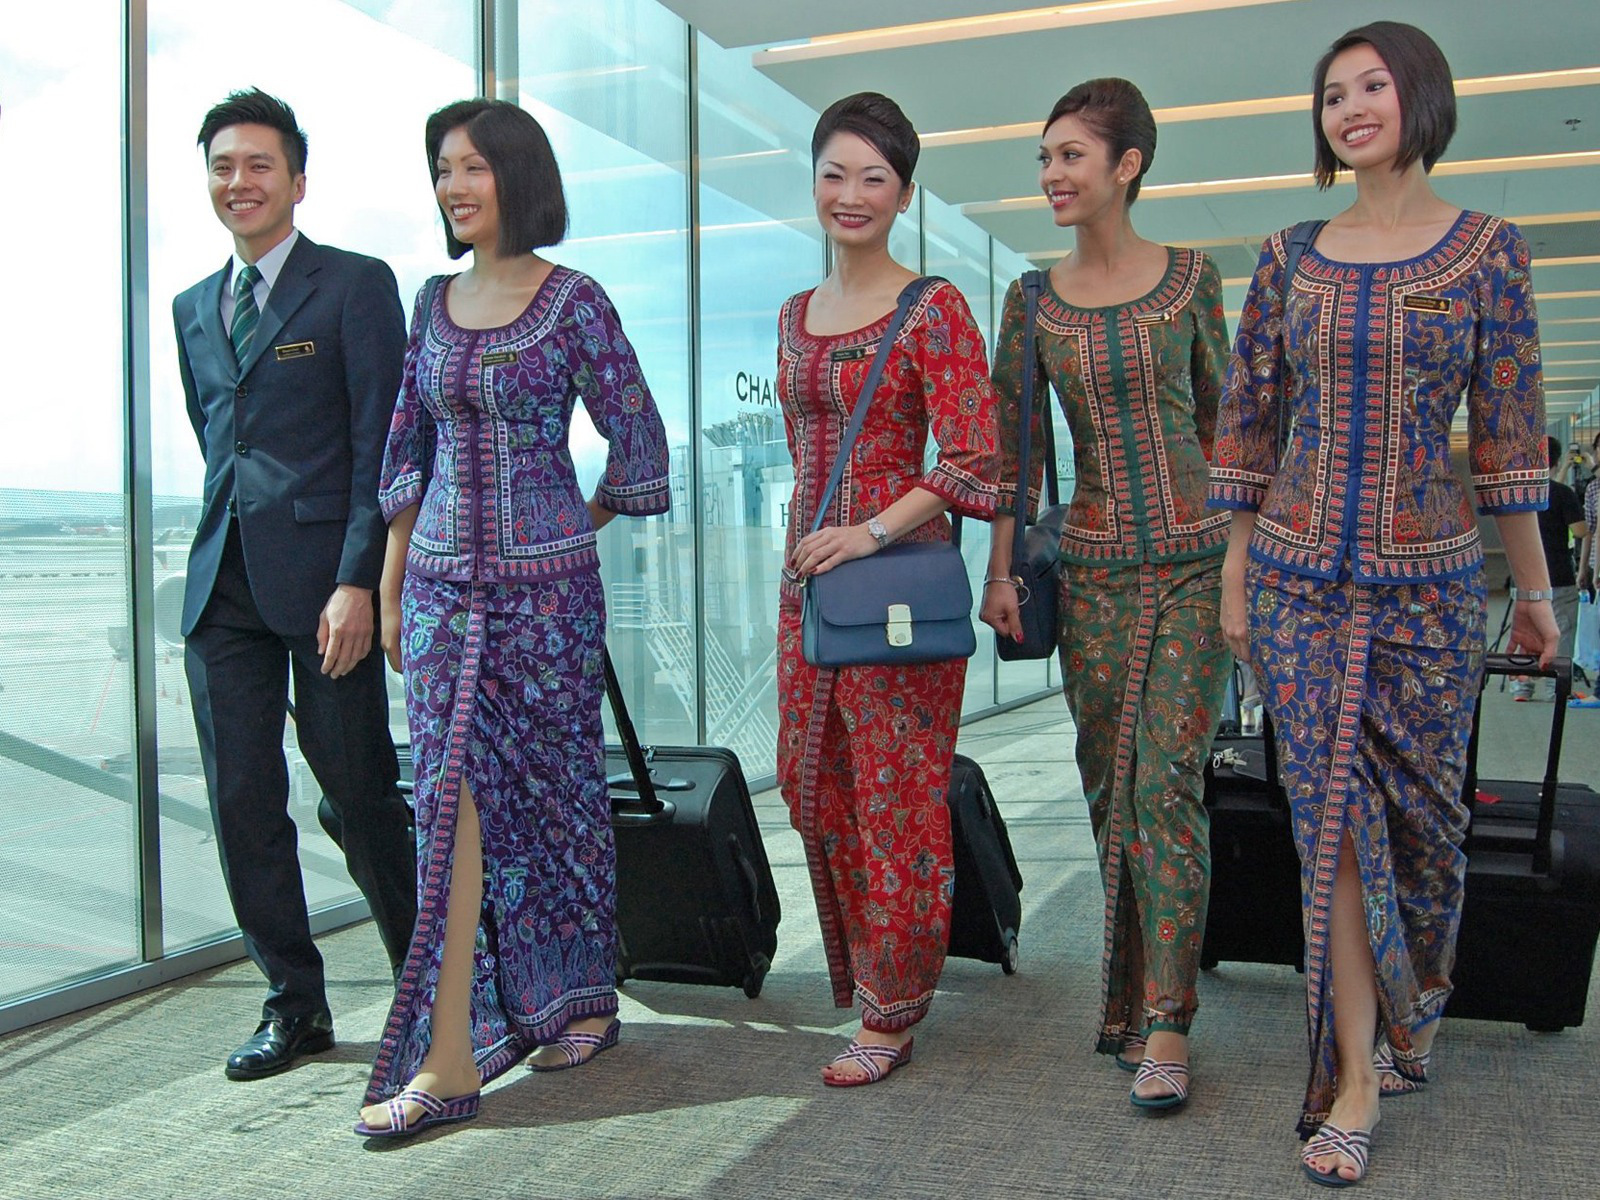 Singapore_Airlines_Crew_Uniform_Colours_3_Crop